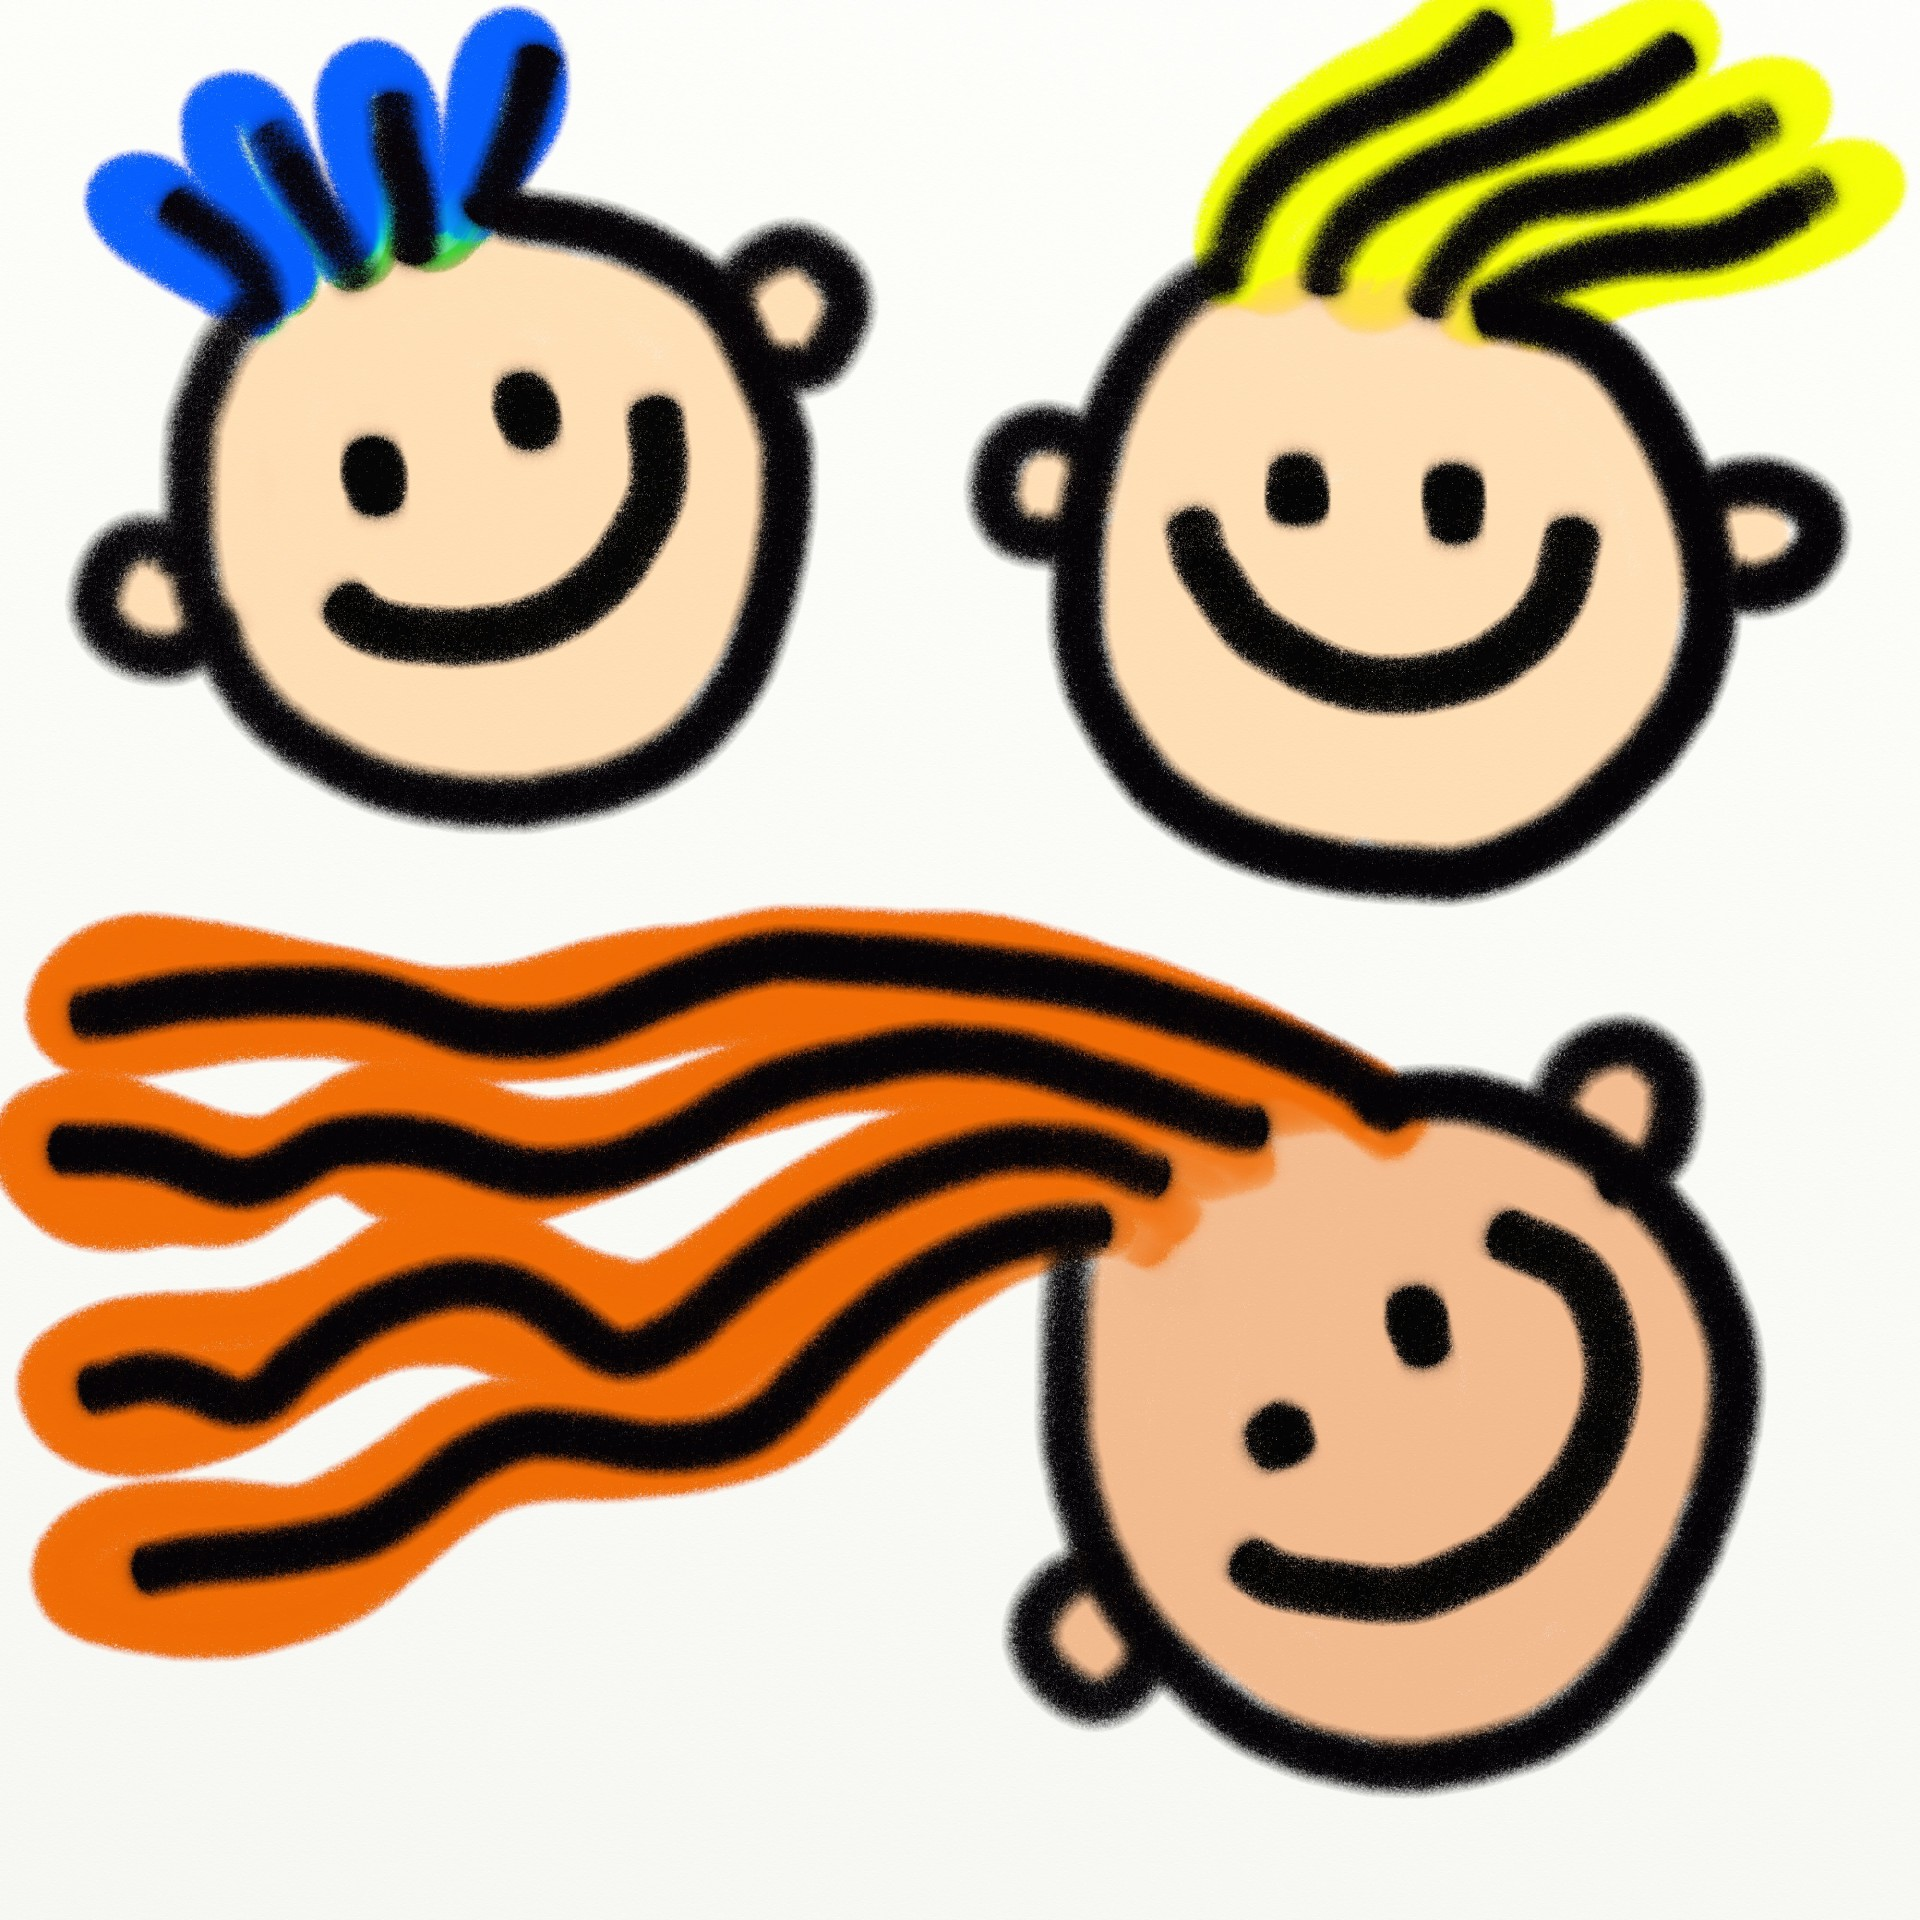 Kids free stock photo. Faces clipart